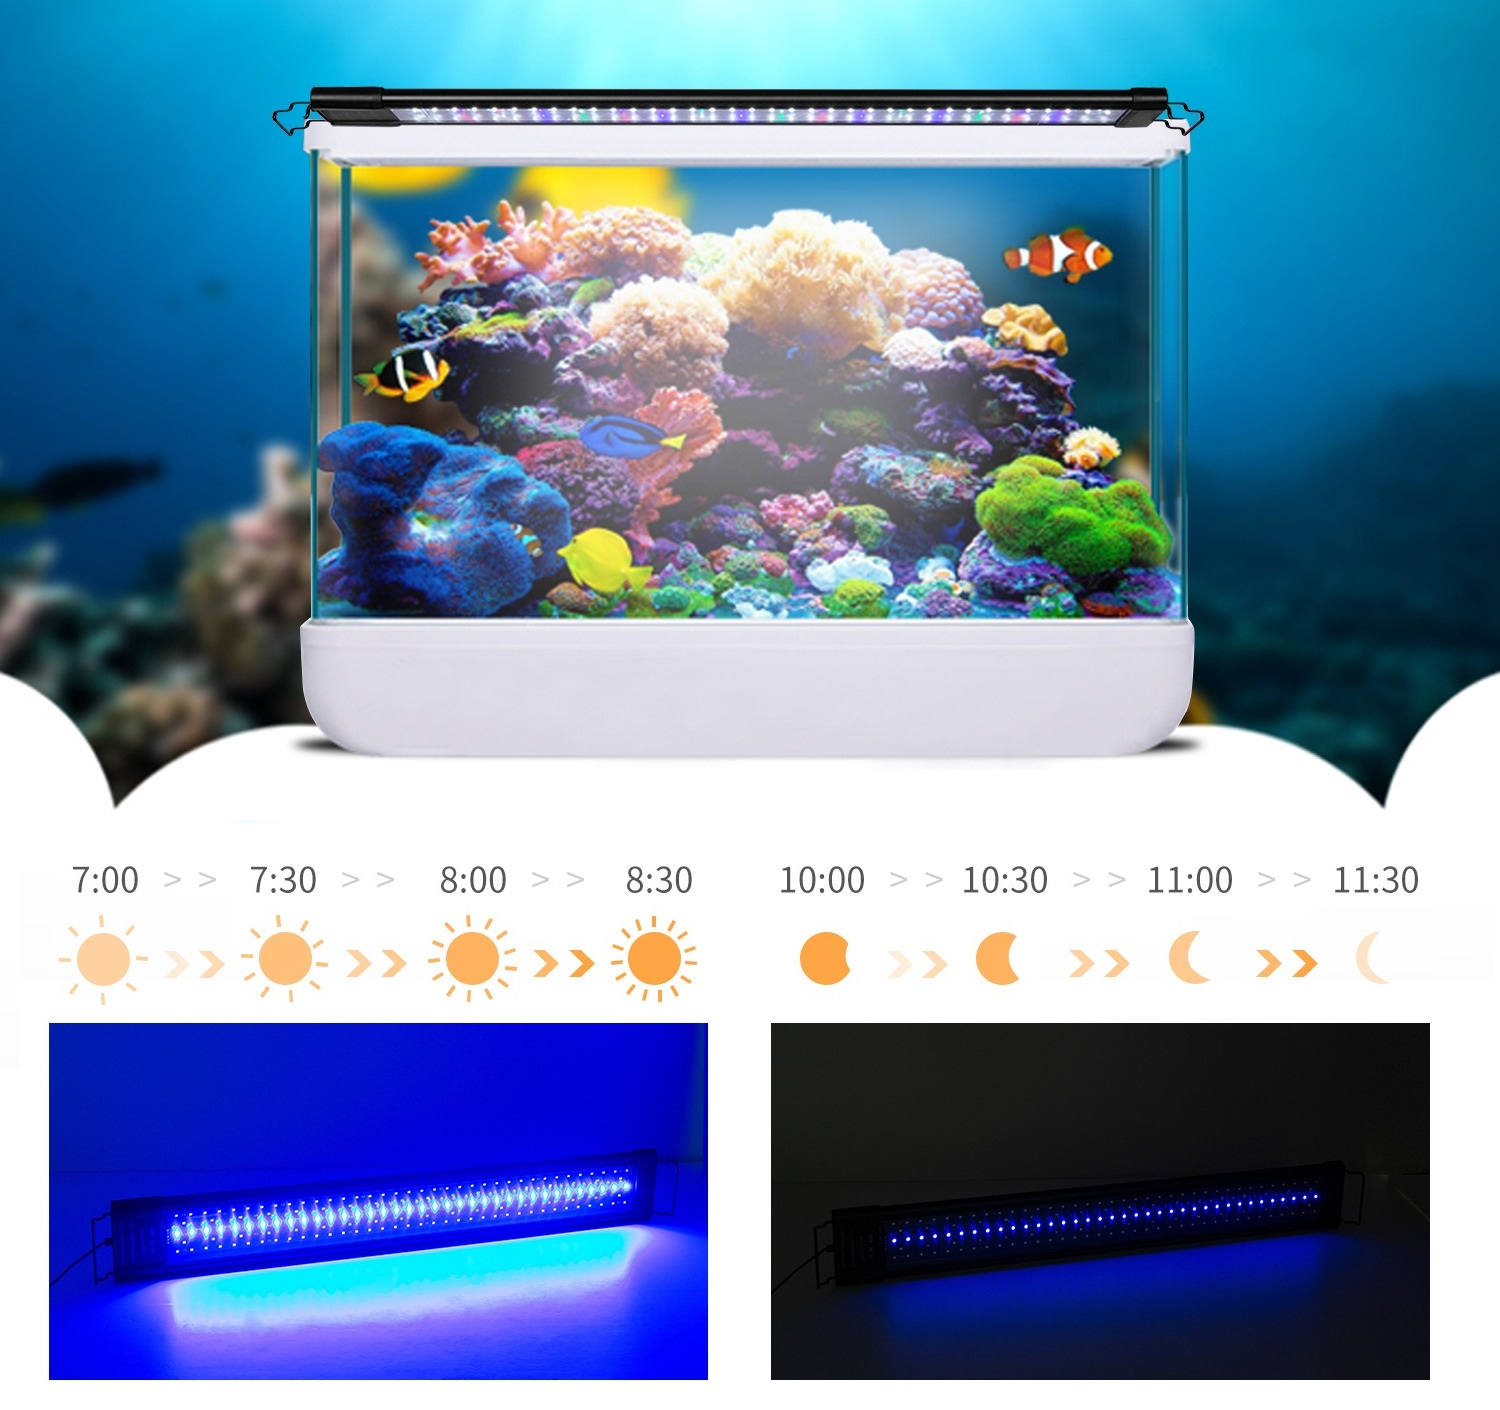 8-w-90-cm-ip-68-led-aquarium-led-lighting_description-10